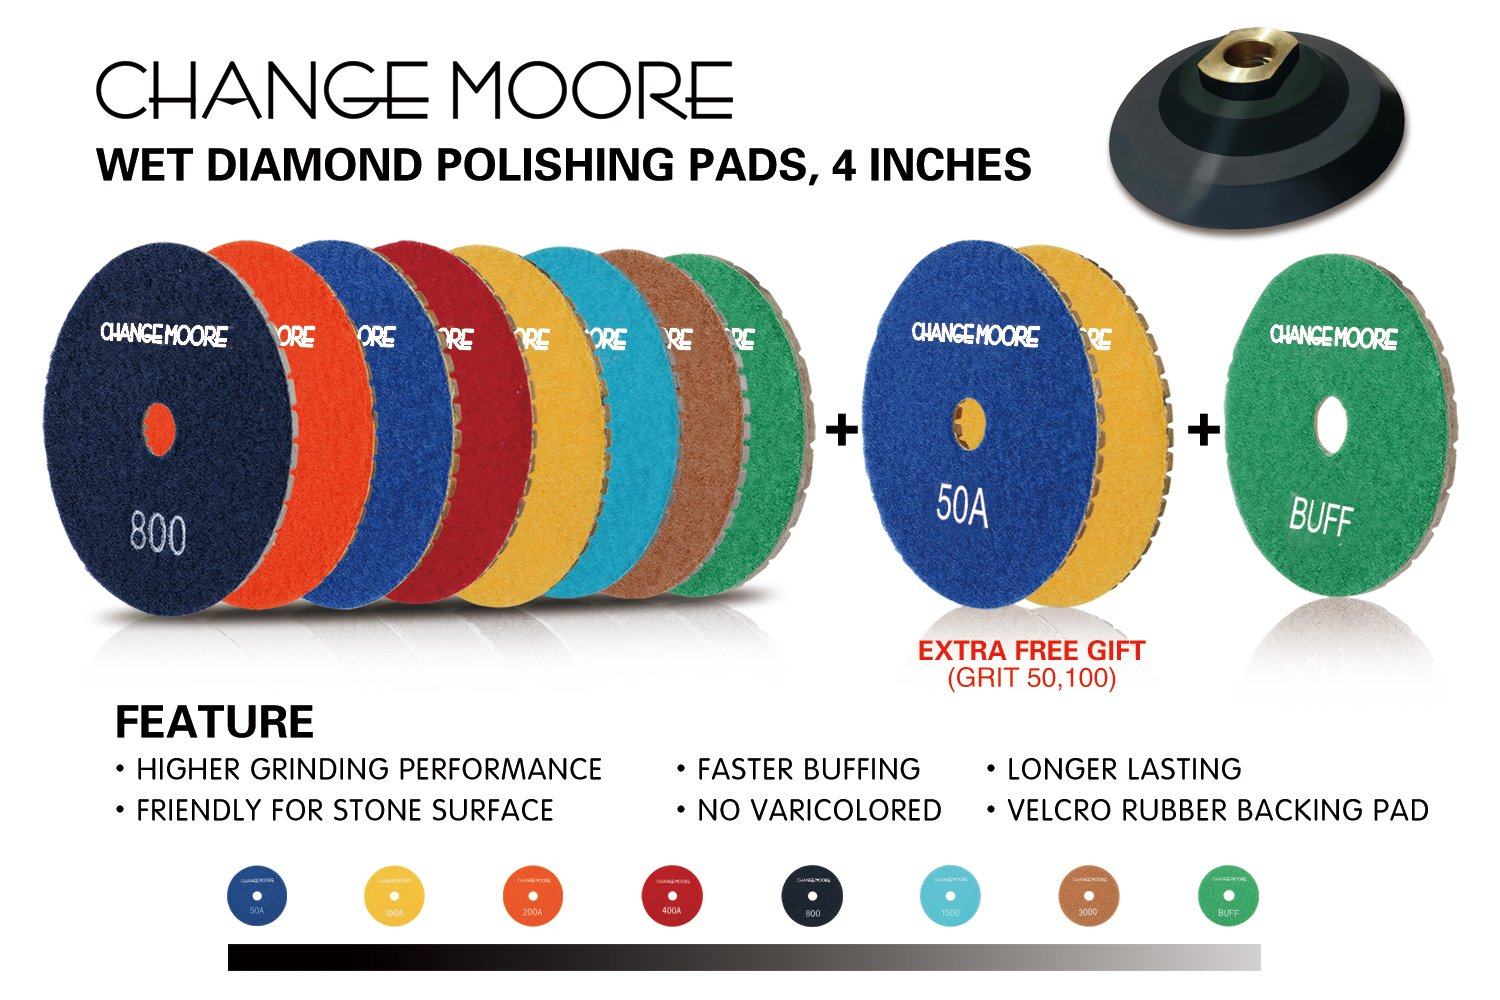 CHANGE MOORE Wet Diamond Polishing Pads Set 4 Inch for Marble Travertine Concrete Quartz Countertop Floor Stone 10 PCS and 1 Velcro Rubber backing pad (5/8'' arbor) by CHANGE MOORE (Image #6)